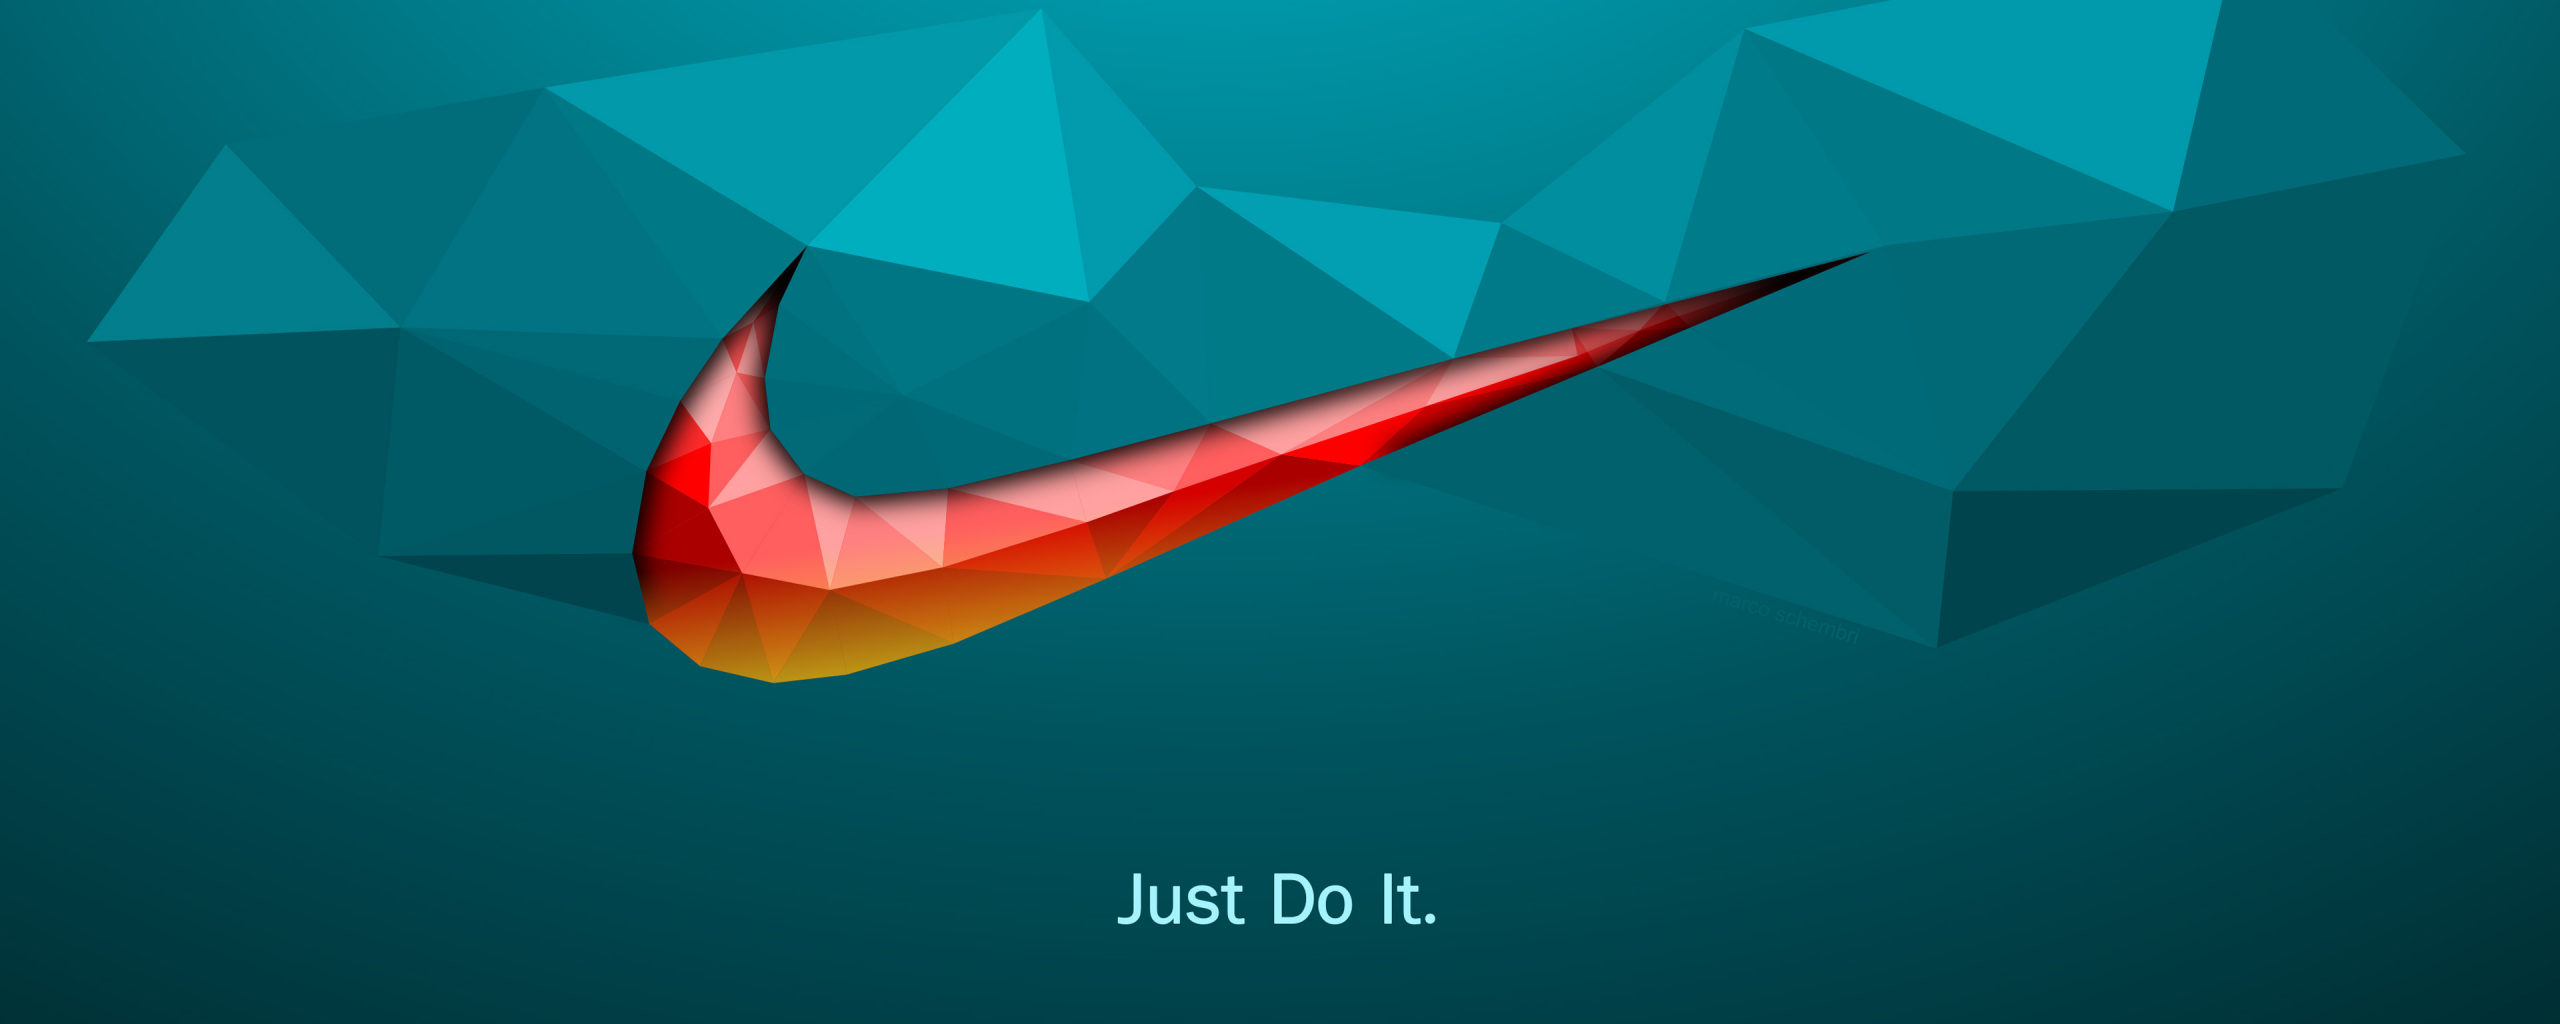 2560x1024 wallpaper Just do it, quotes, Nike, logo, abstract